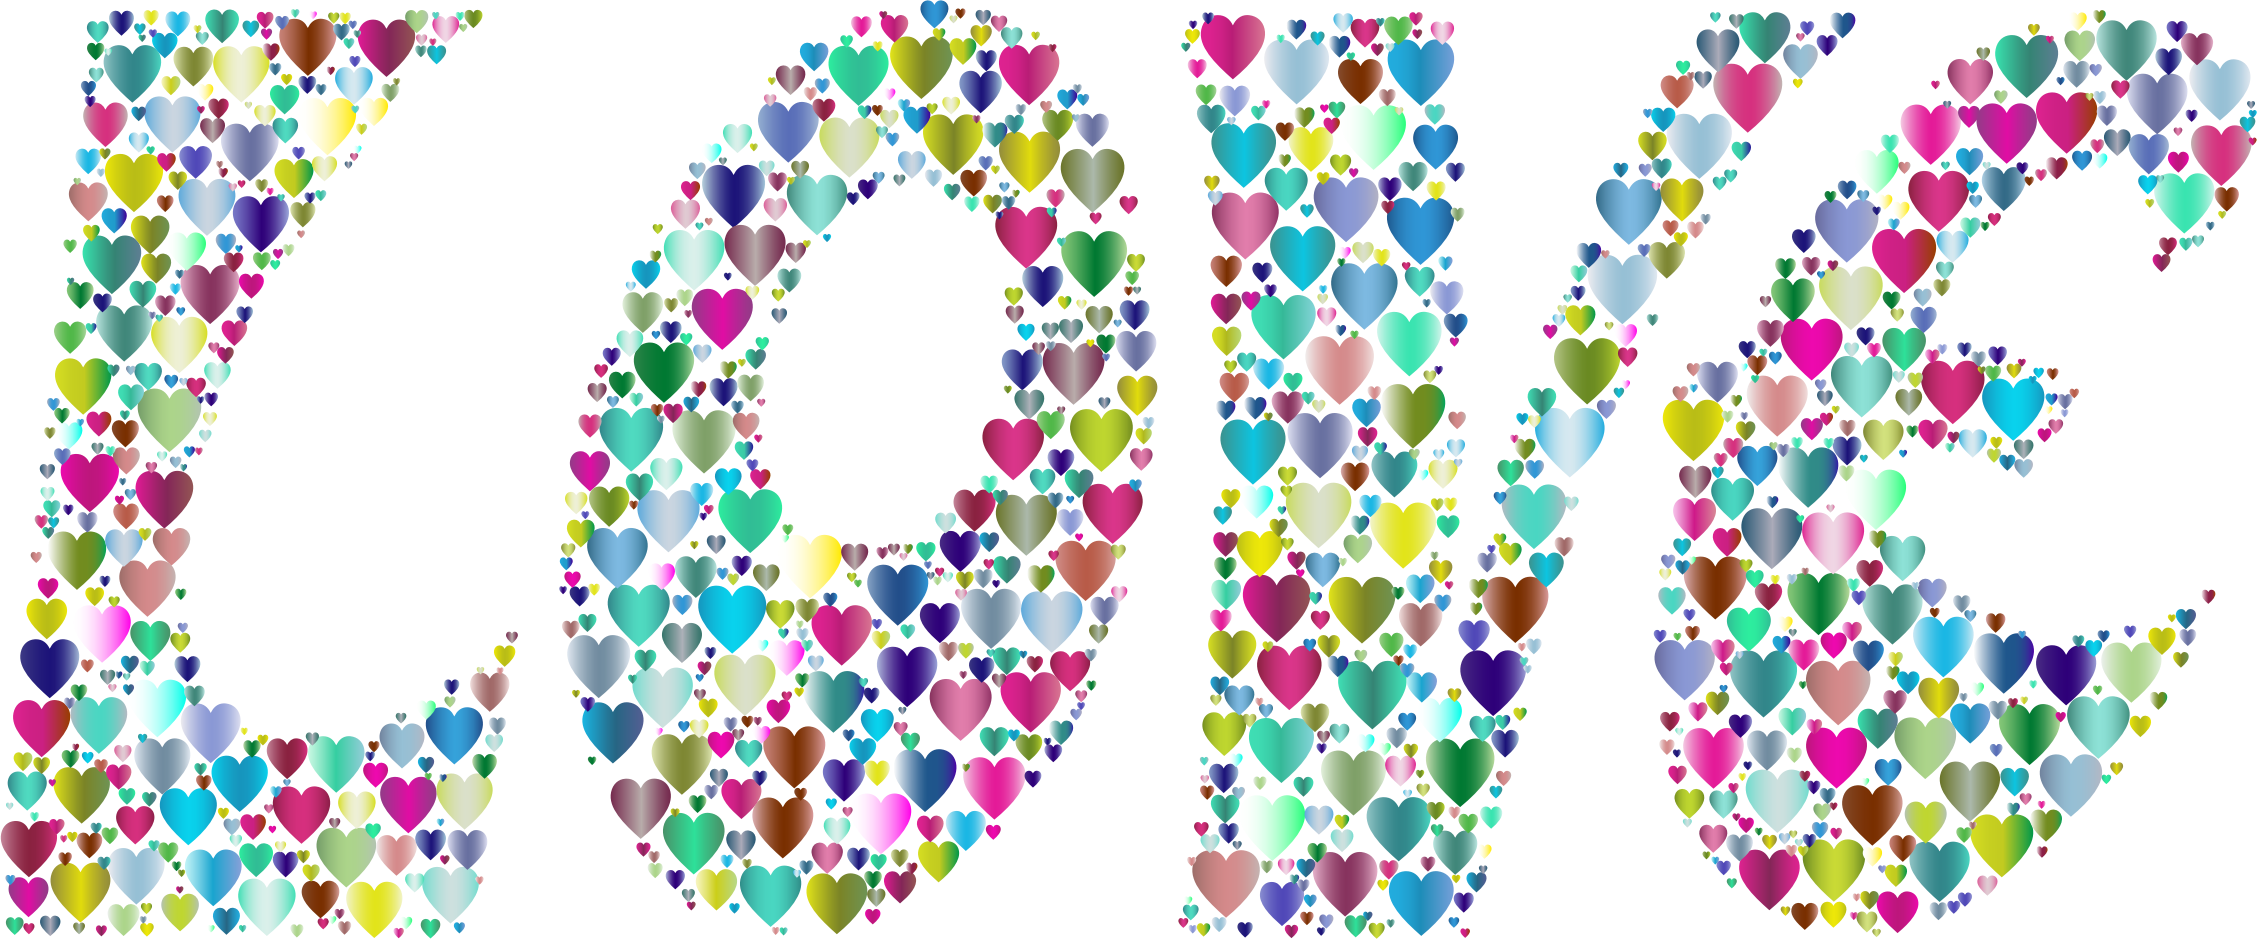 Prismatic Love Hearts Typography 2 by GDJ